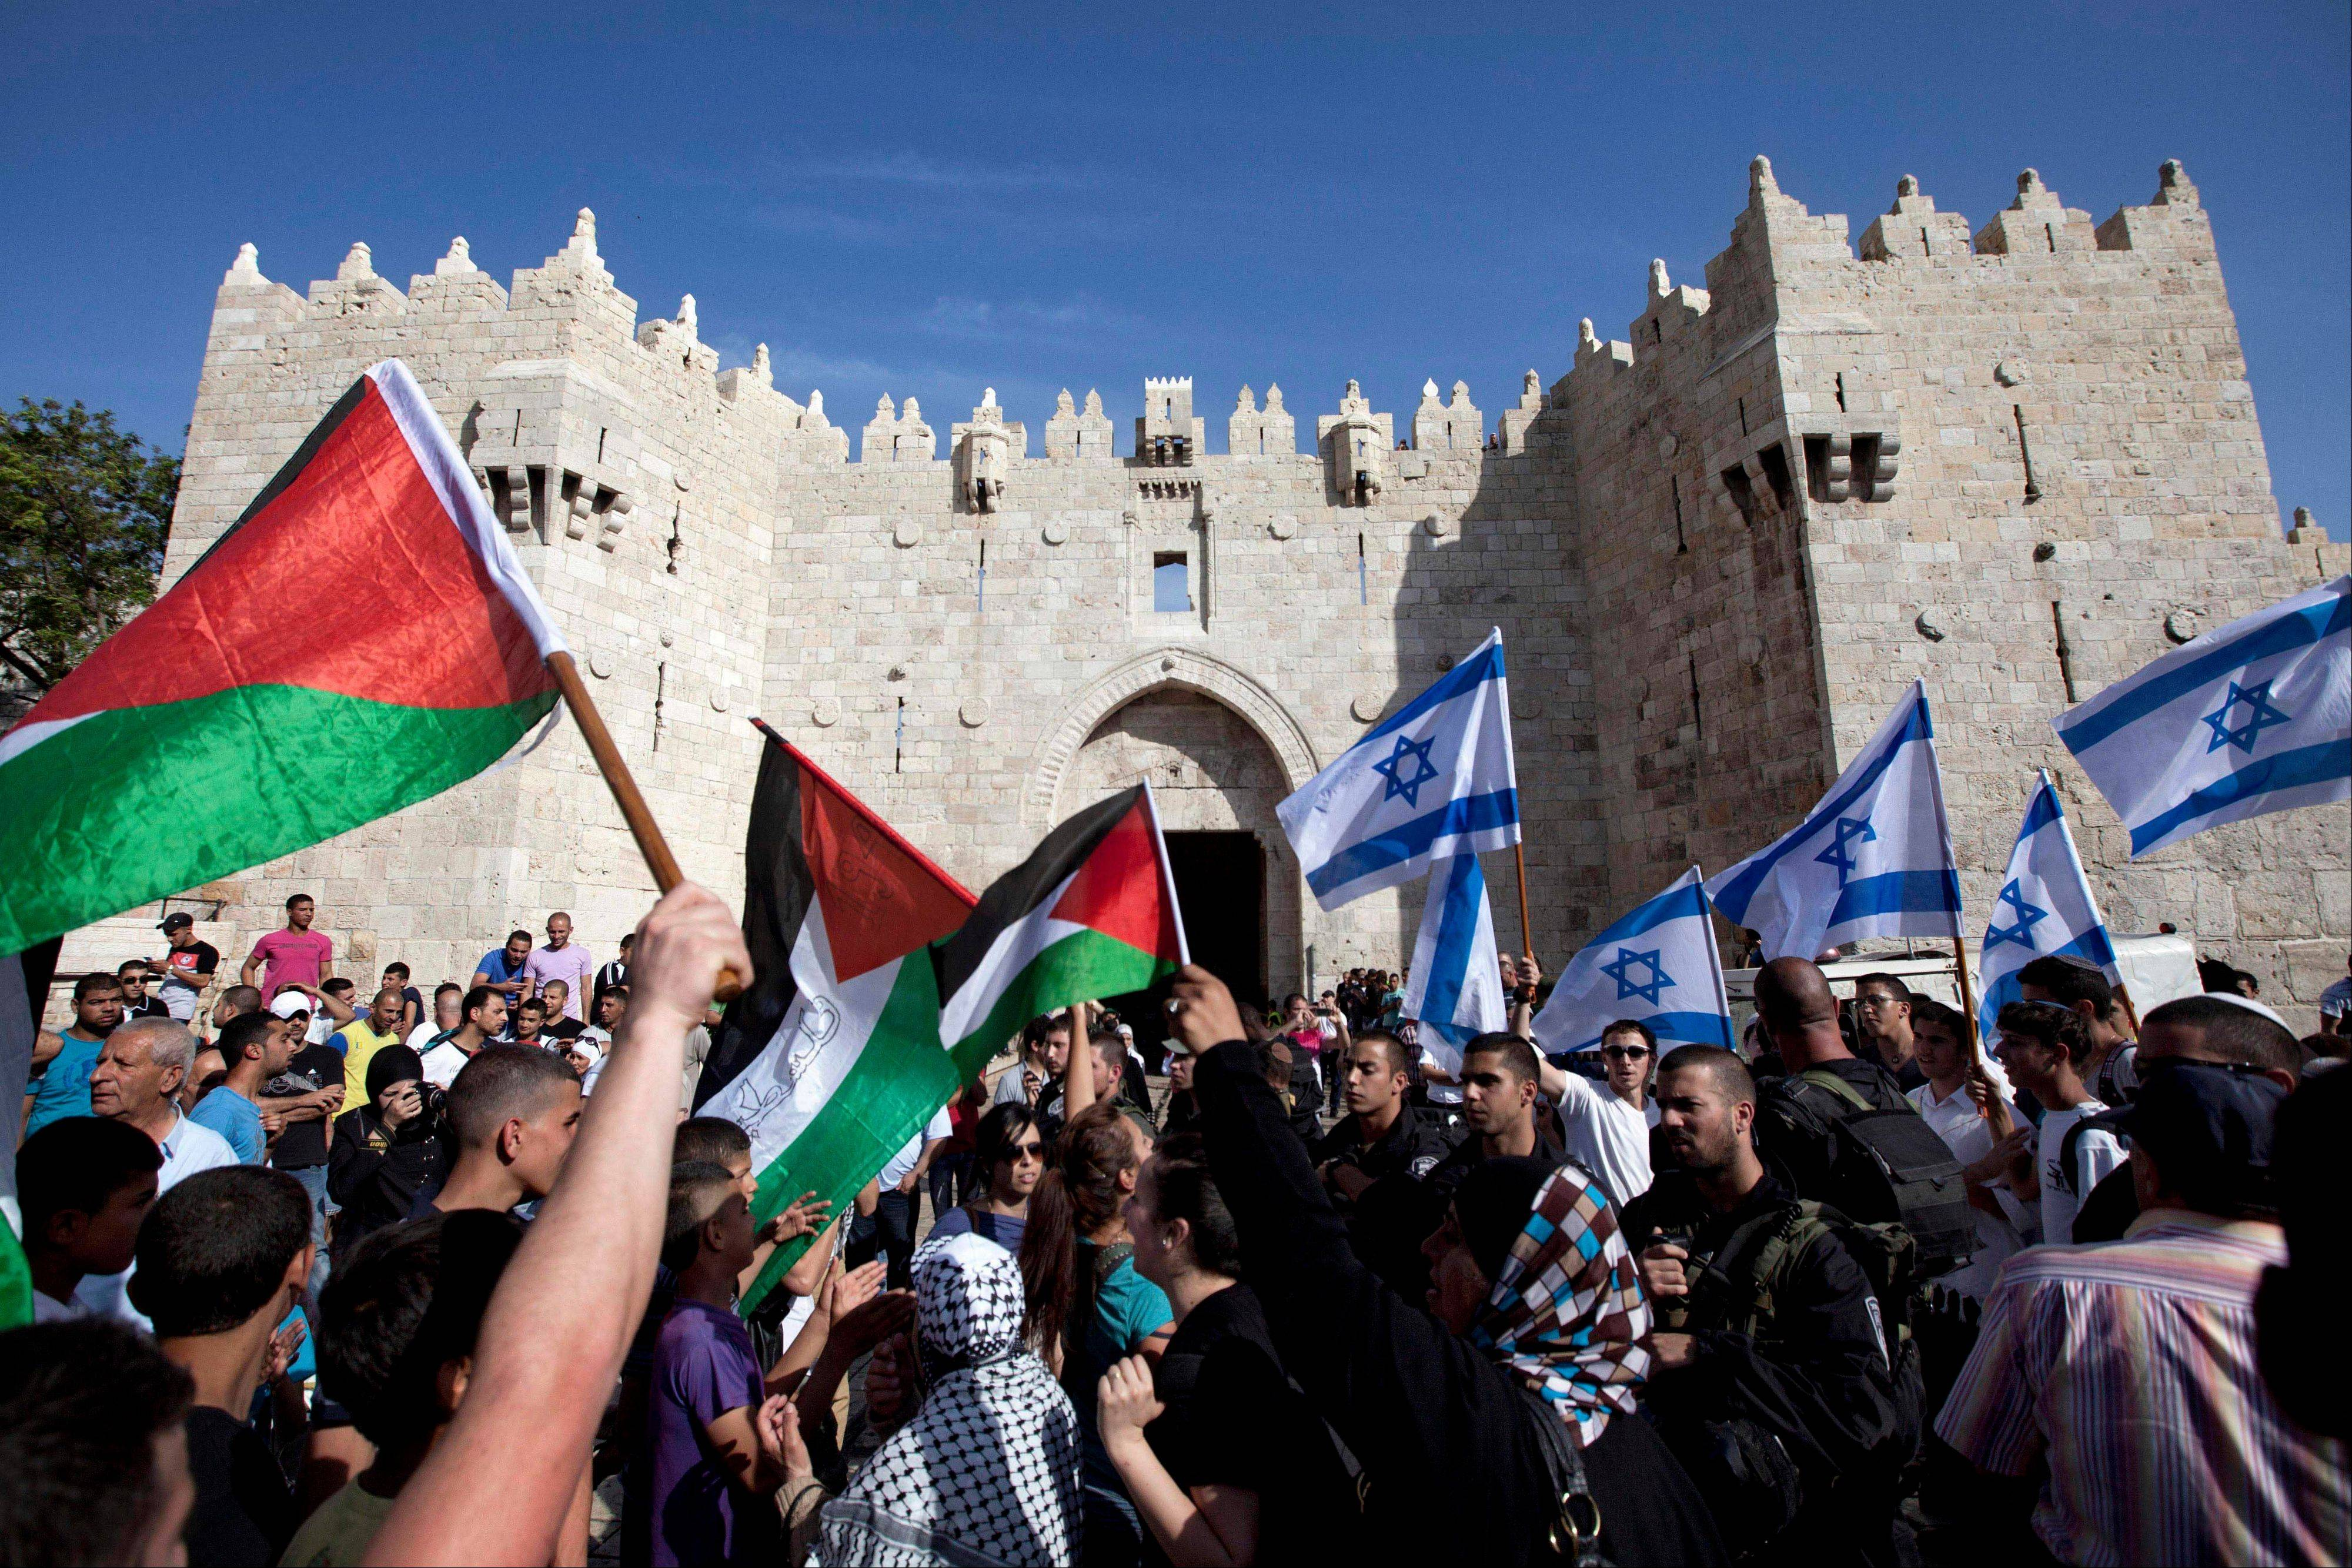 Israelis and Palestinians wave flags as Israelis march celebrating Jerusalem Day outside Damascus Gate in Jerusalem's old city on May 8. The U.S. on Sunday announced the resumption of Israeli-Palestinian talks following years of stalemate, after Israel's Cabinet agreed to release 104 Palestinian prisoners convicted of deadly attacks. The return to direct contacts between the sides gave U.S. Secretary of State John Kerry his first concrete achievement after months of shuttle diplomacy.